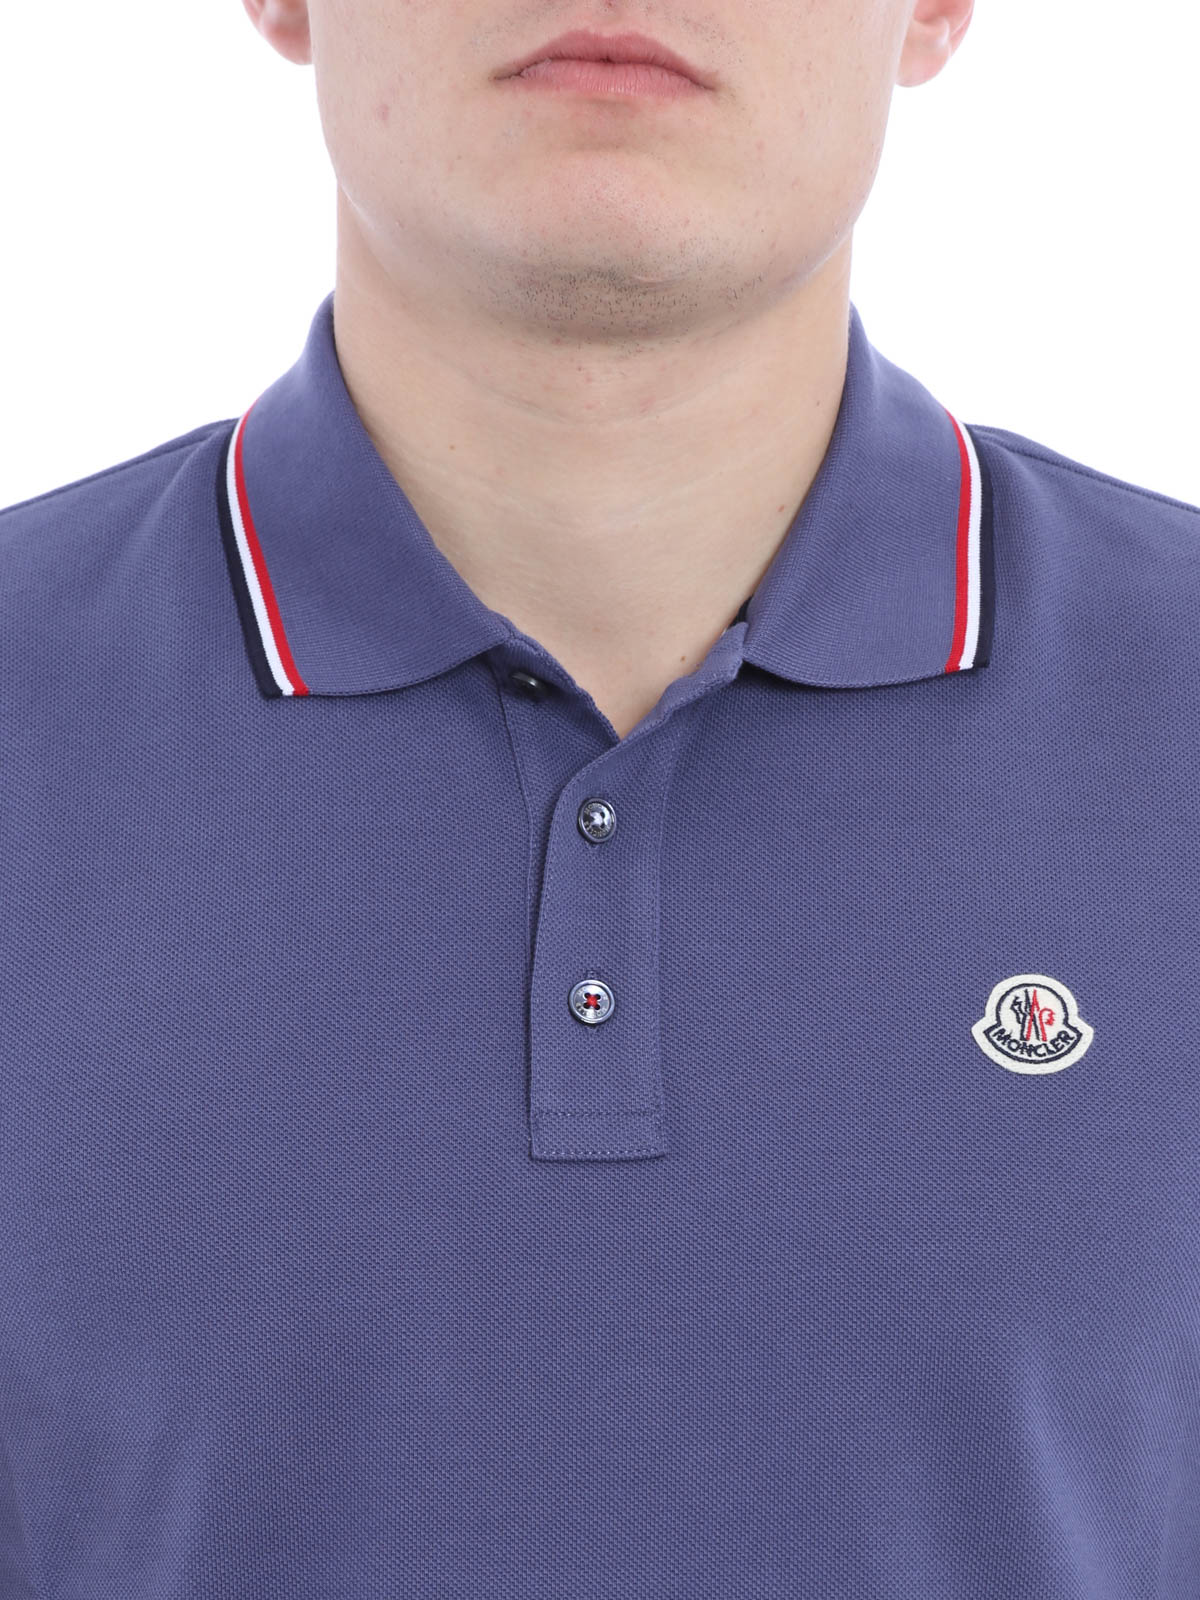 9c47d53f8 Moncler - Cotton pique polo shirt - polo shirts - B1 091 8345600 ...